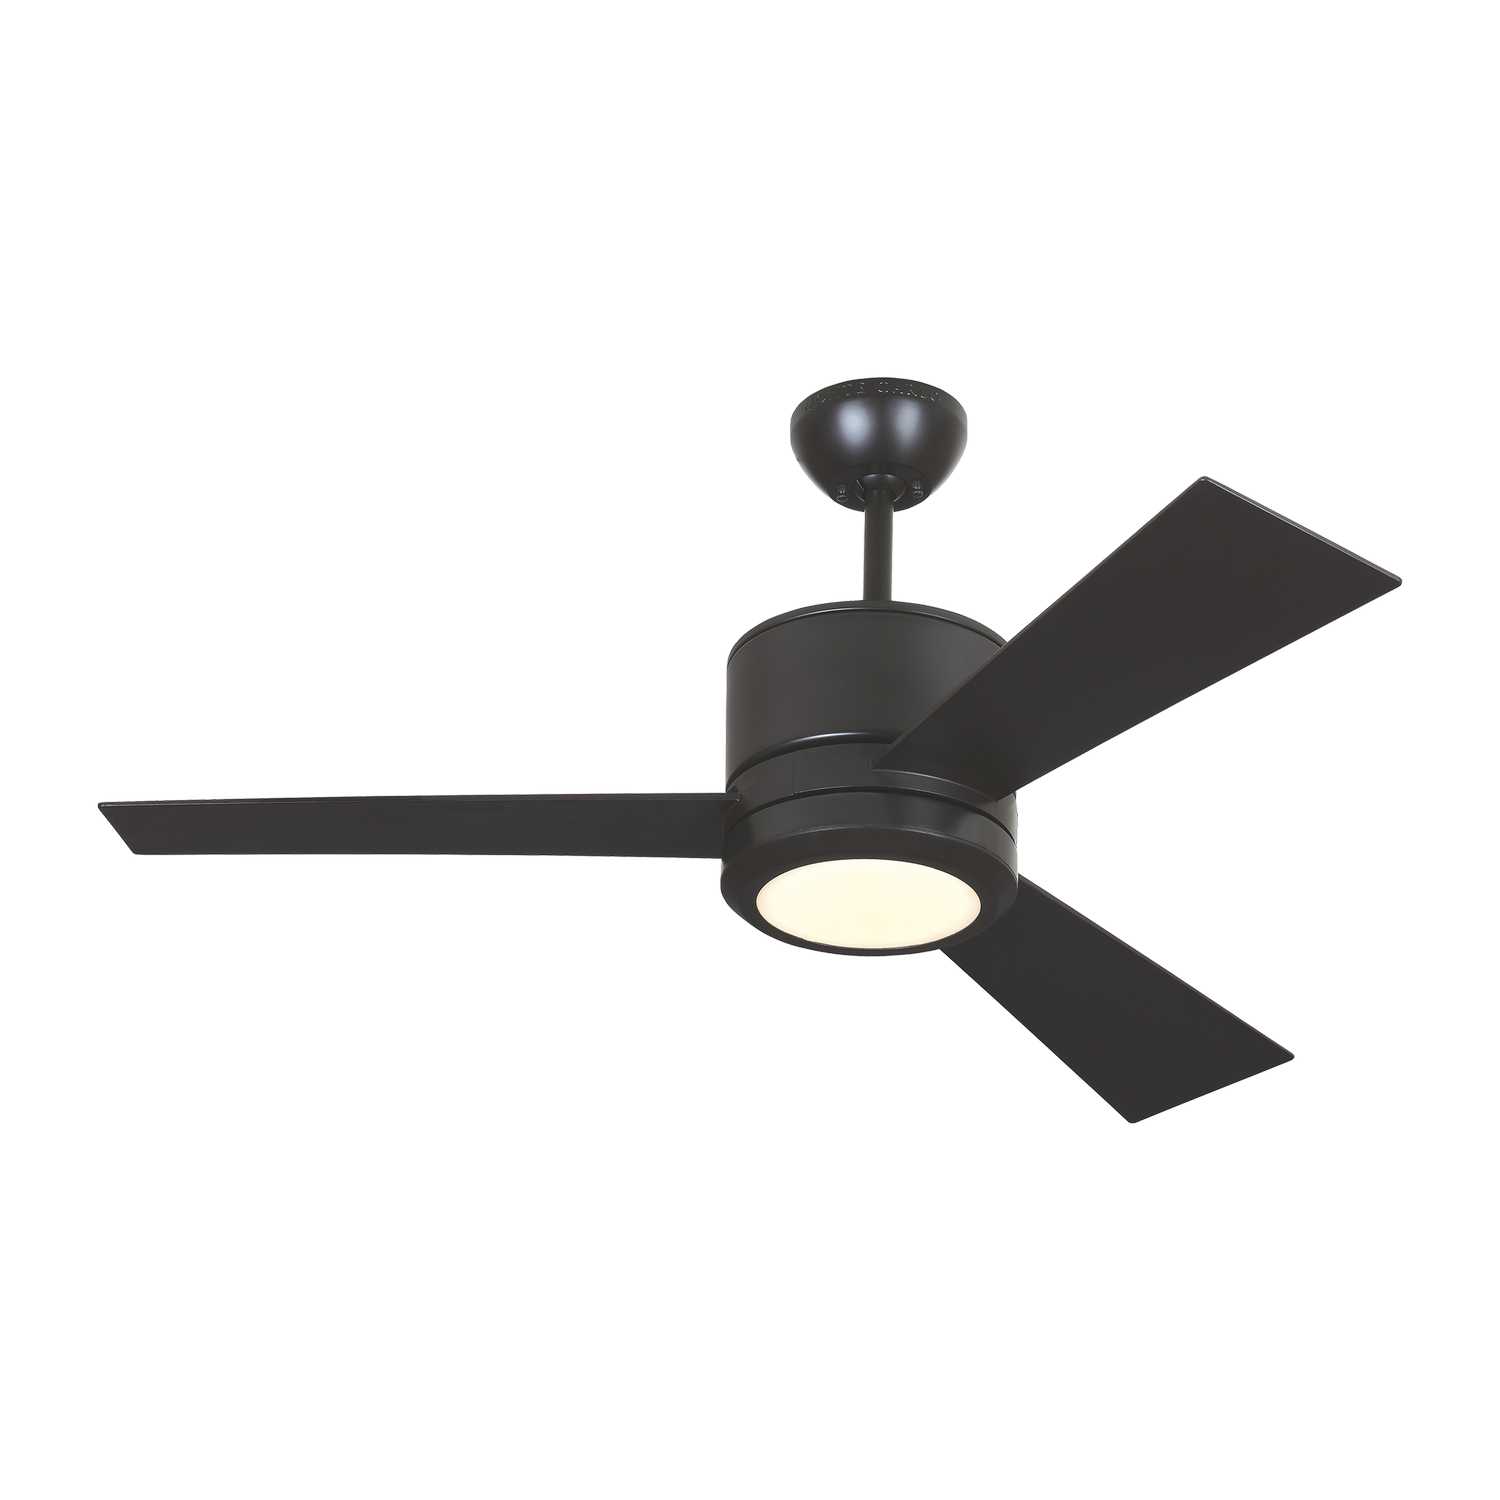 42 inchCeiling Fan from the Vision II collection by Monte Carlo 3VNR42OZD V1